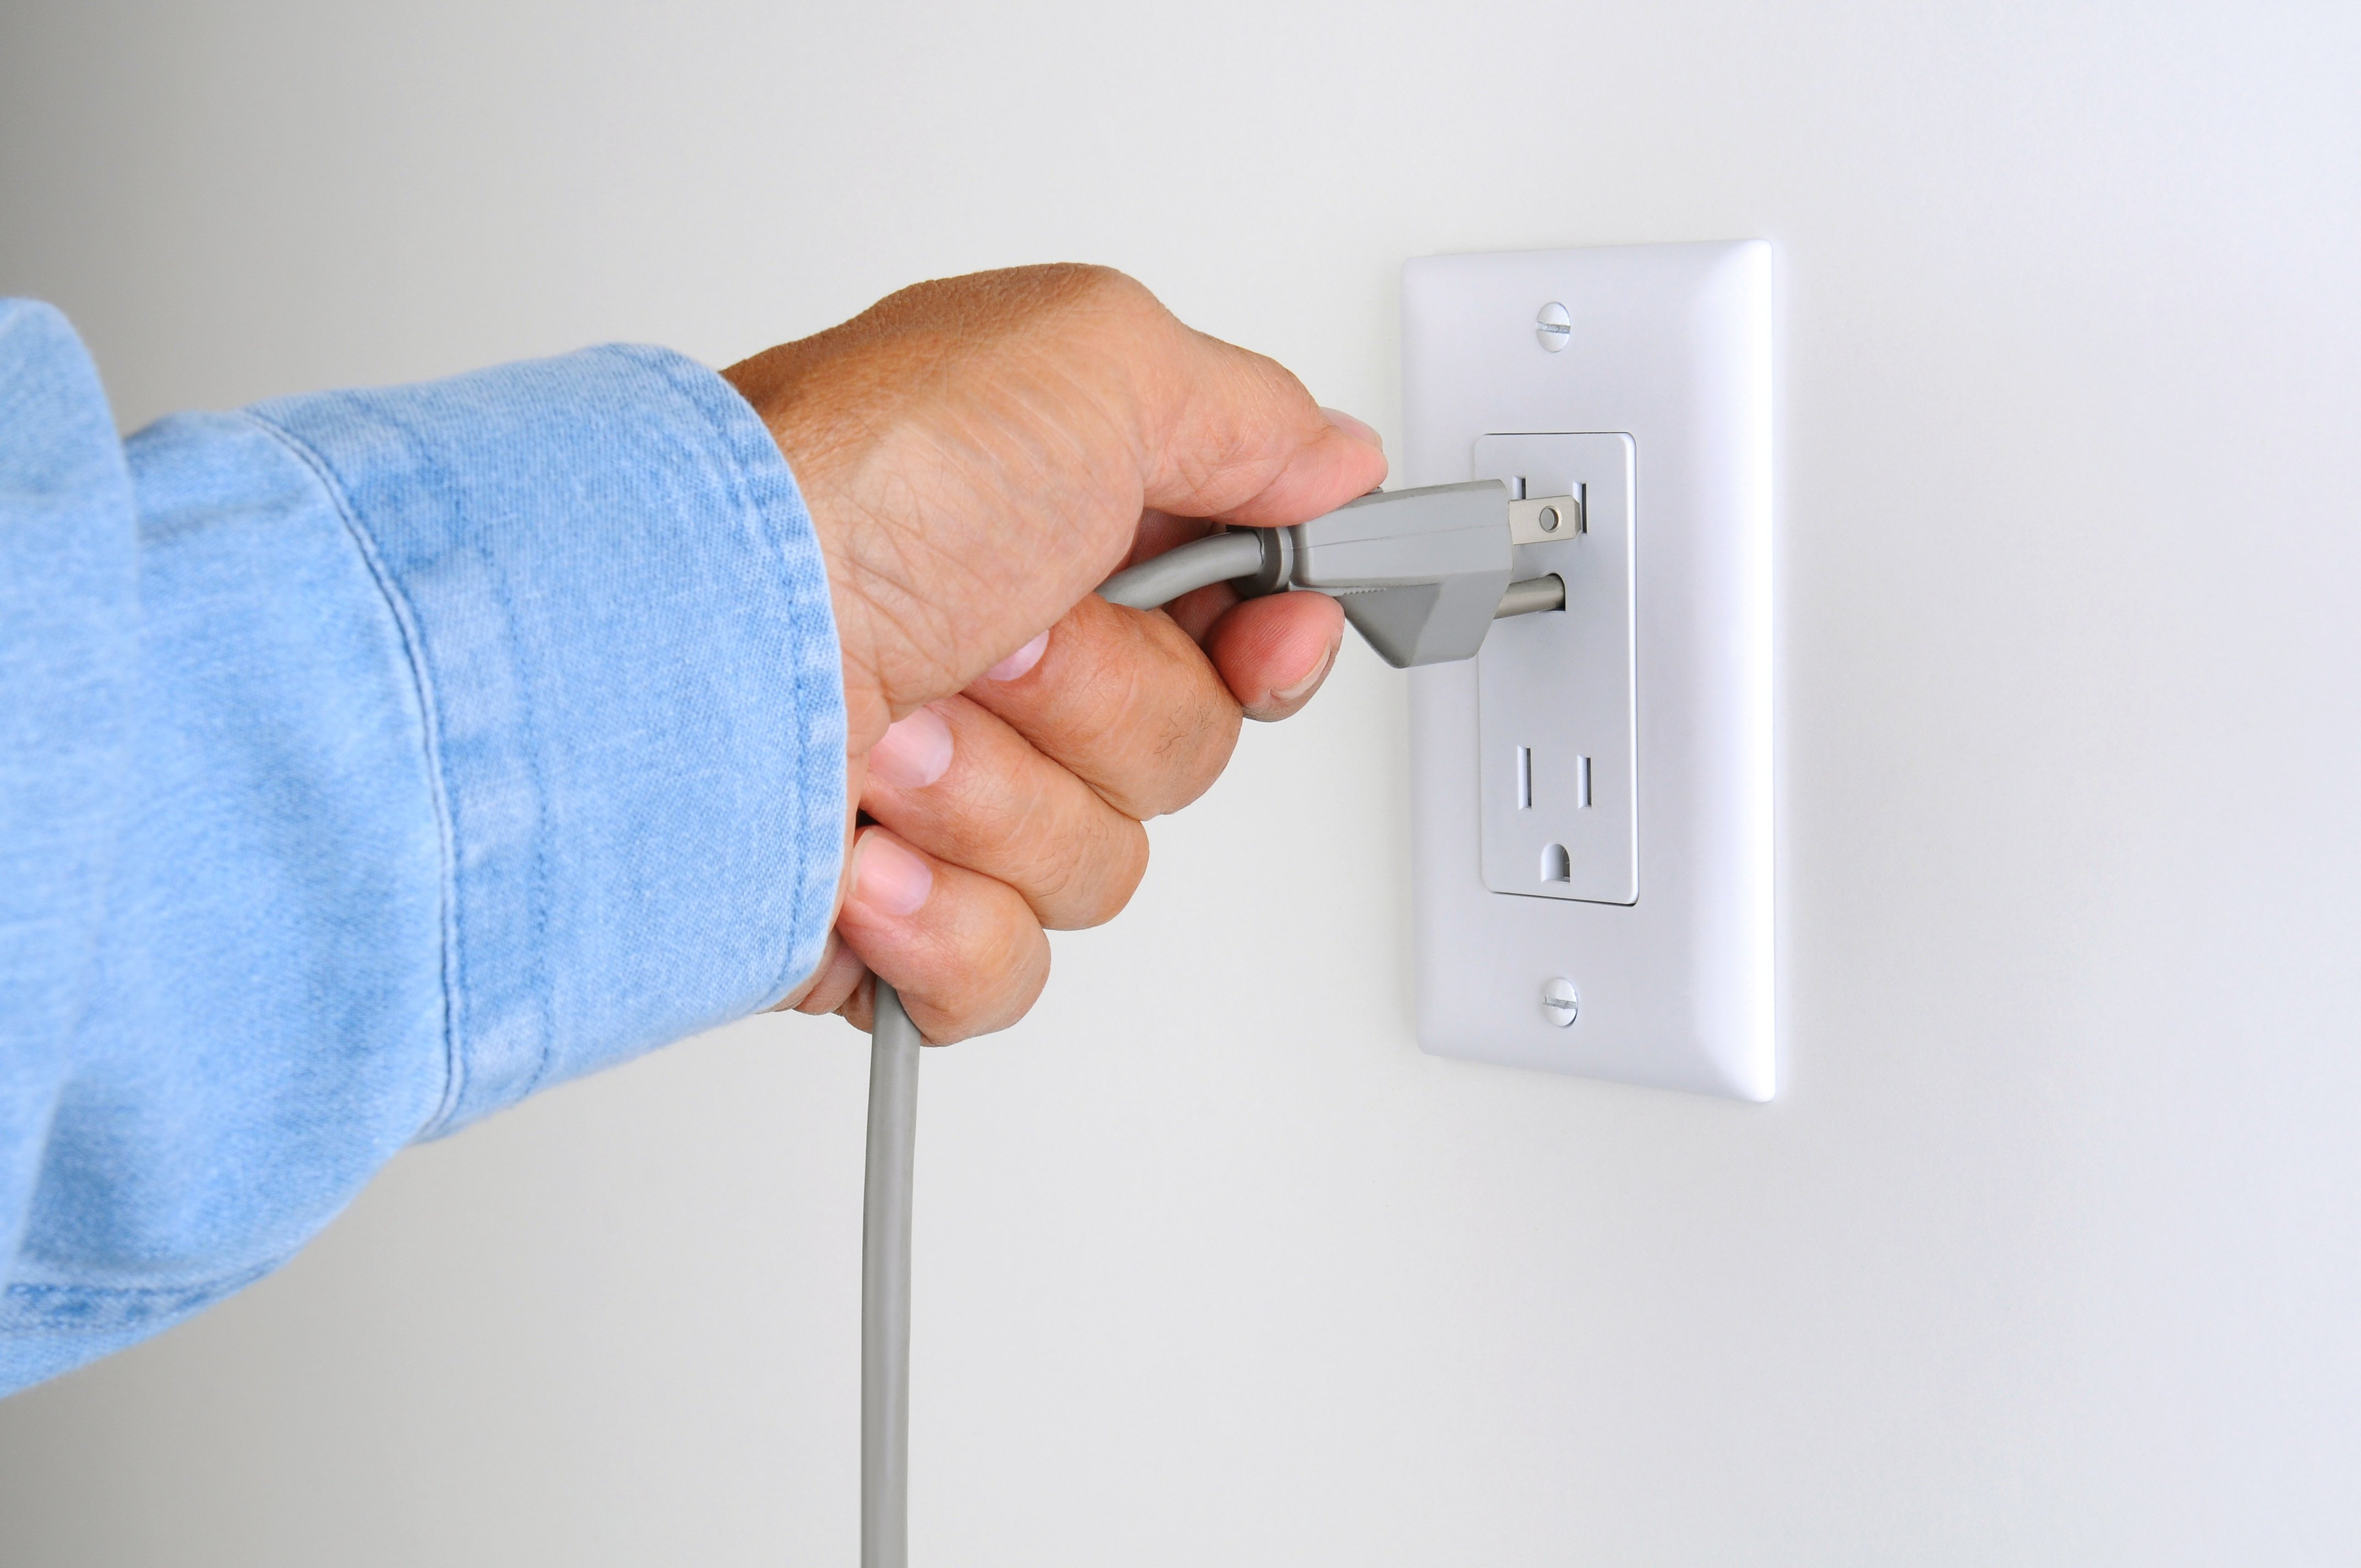 Electrician plugging appliance into socket